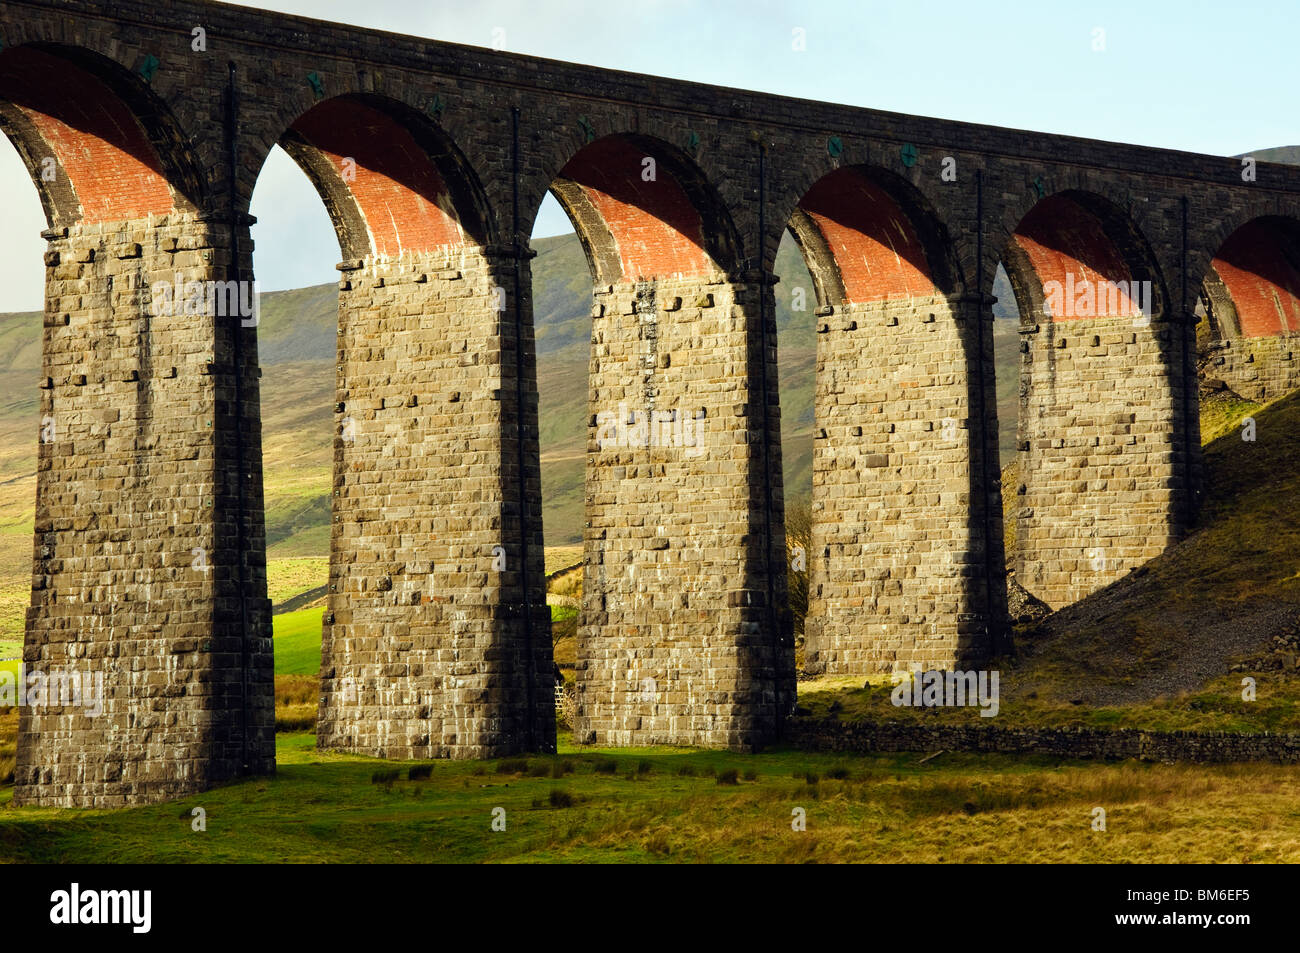 The Ribblehead Viaduct on the Settle-Carlisle railway line in the Yorkshire Dales National Park, England - Stock Image